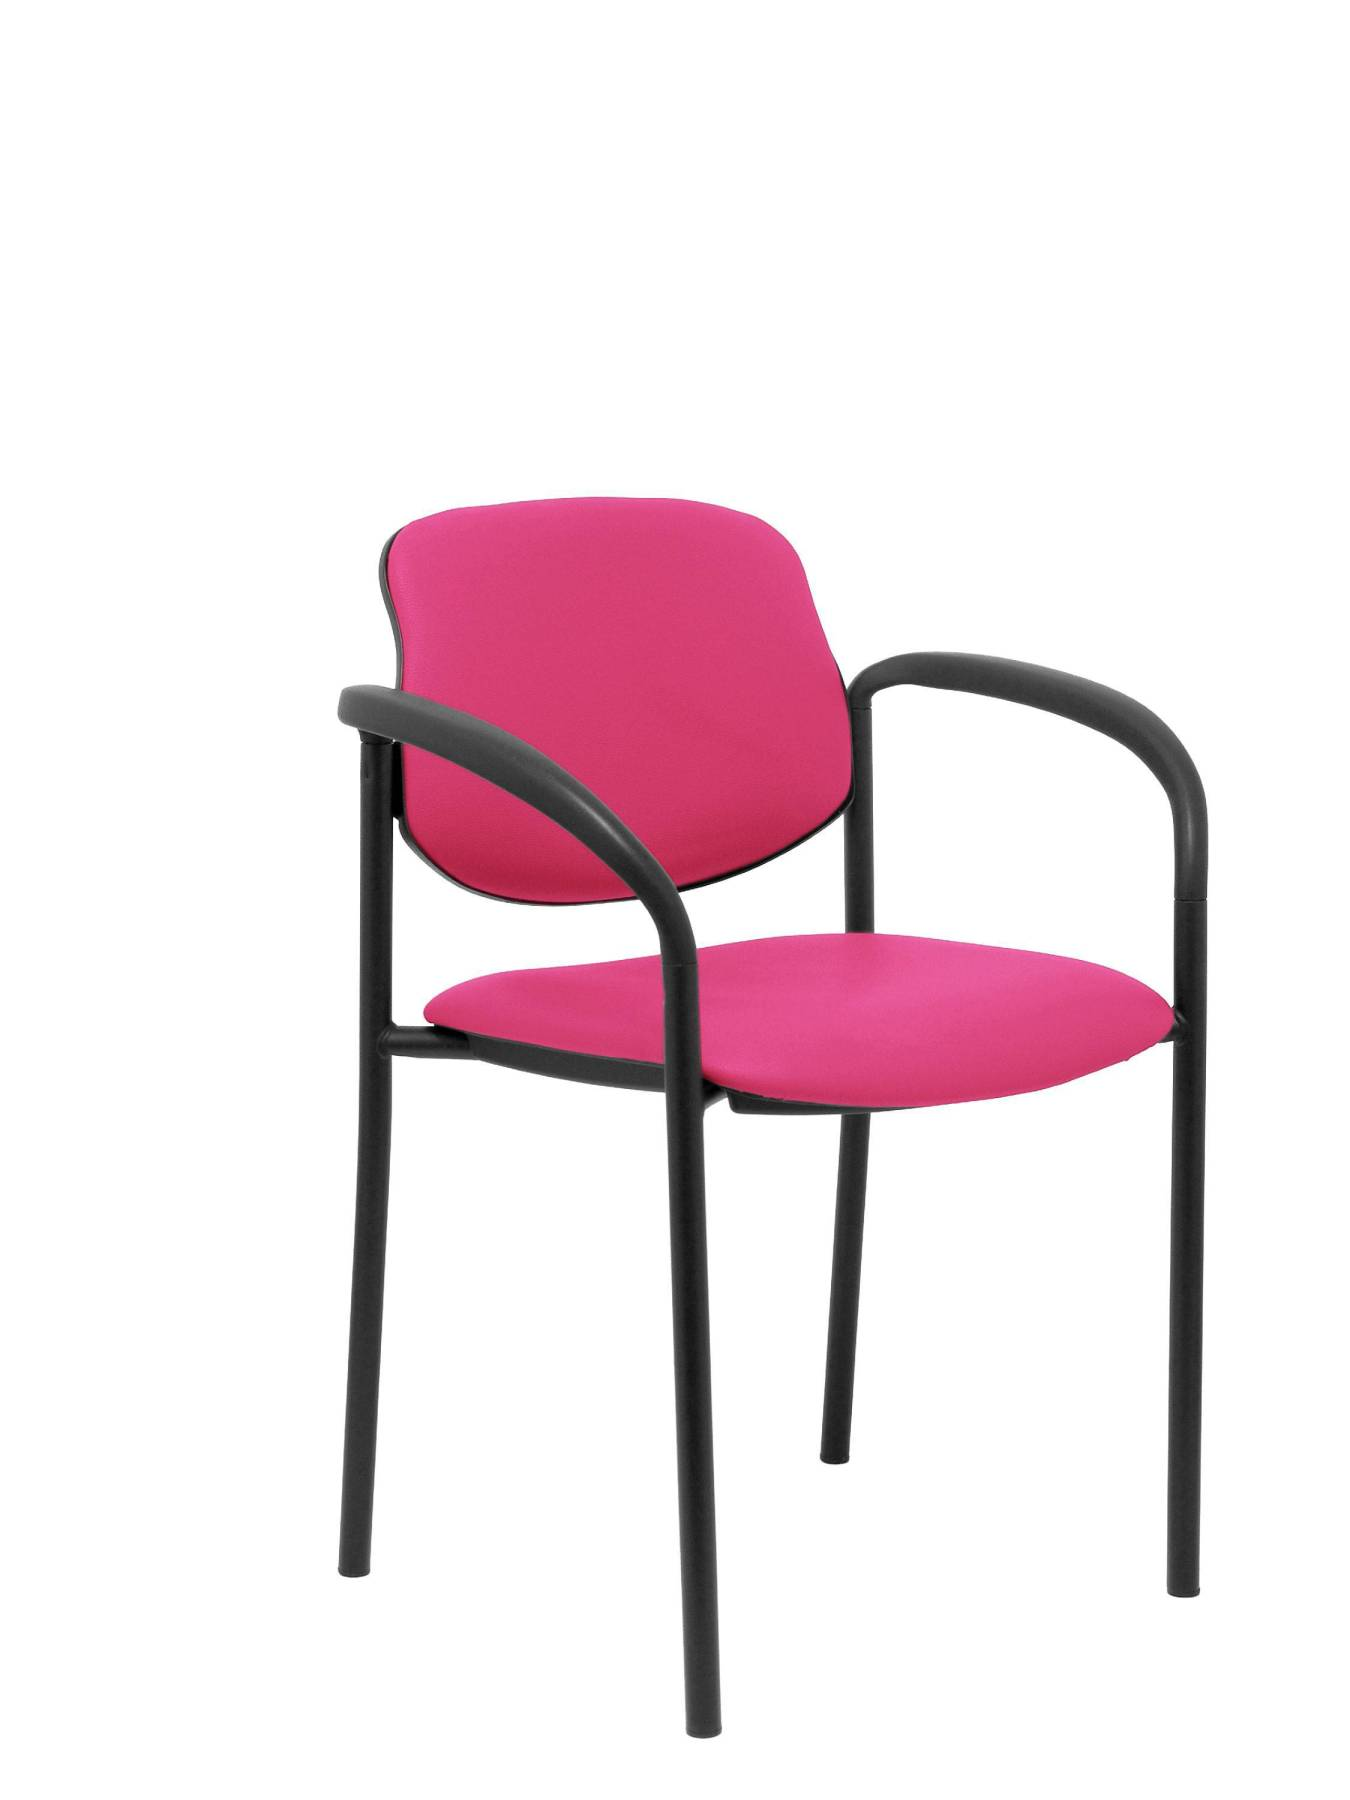 Visitor Chair 4's Topsy, With Arms And Estructrua Negro-up Seat And Backstop Upholstered In Tissue Similpiel Pink PIQUE